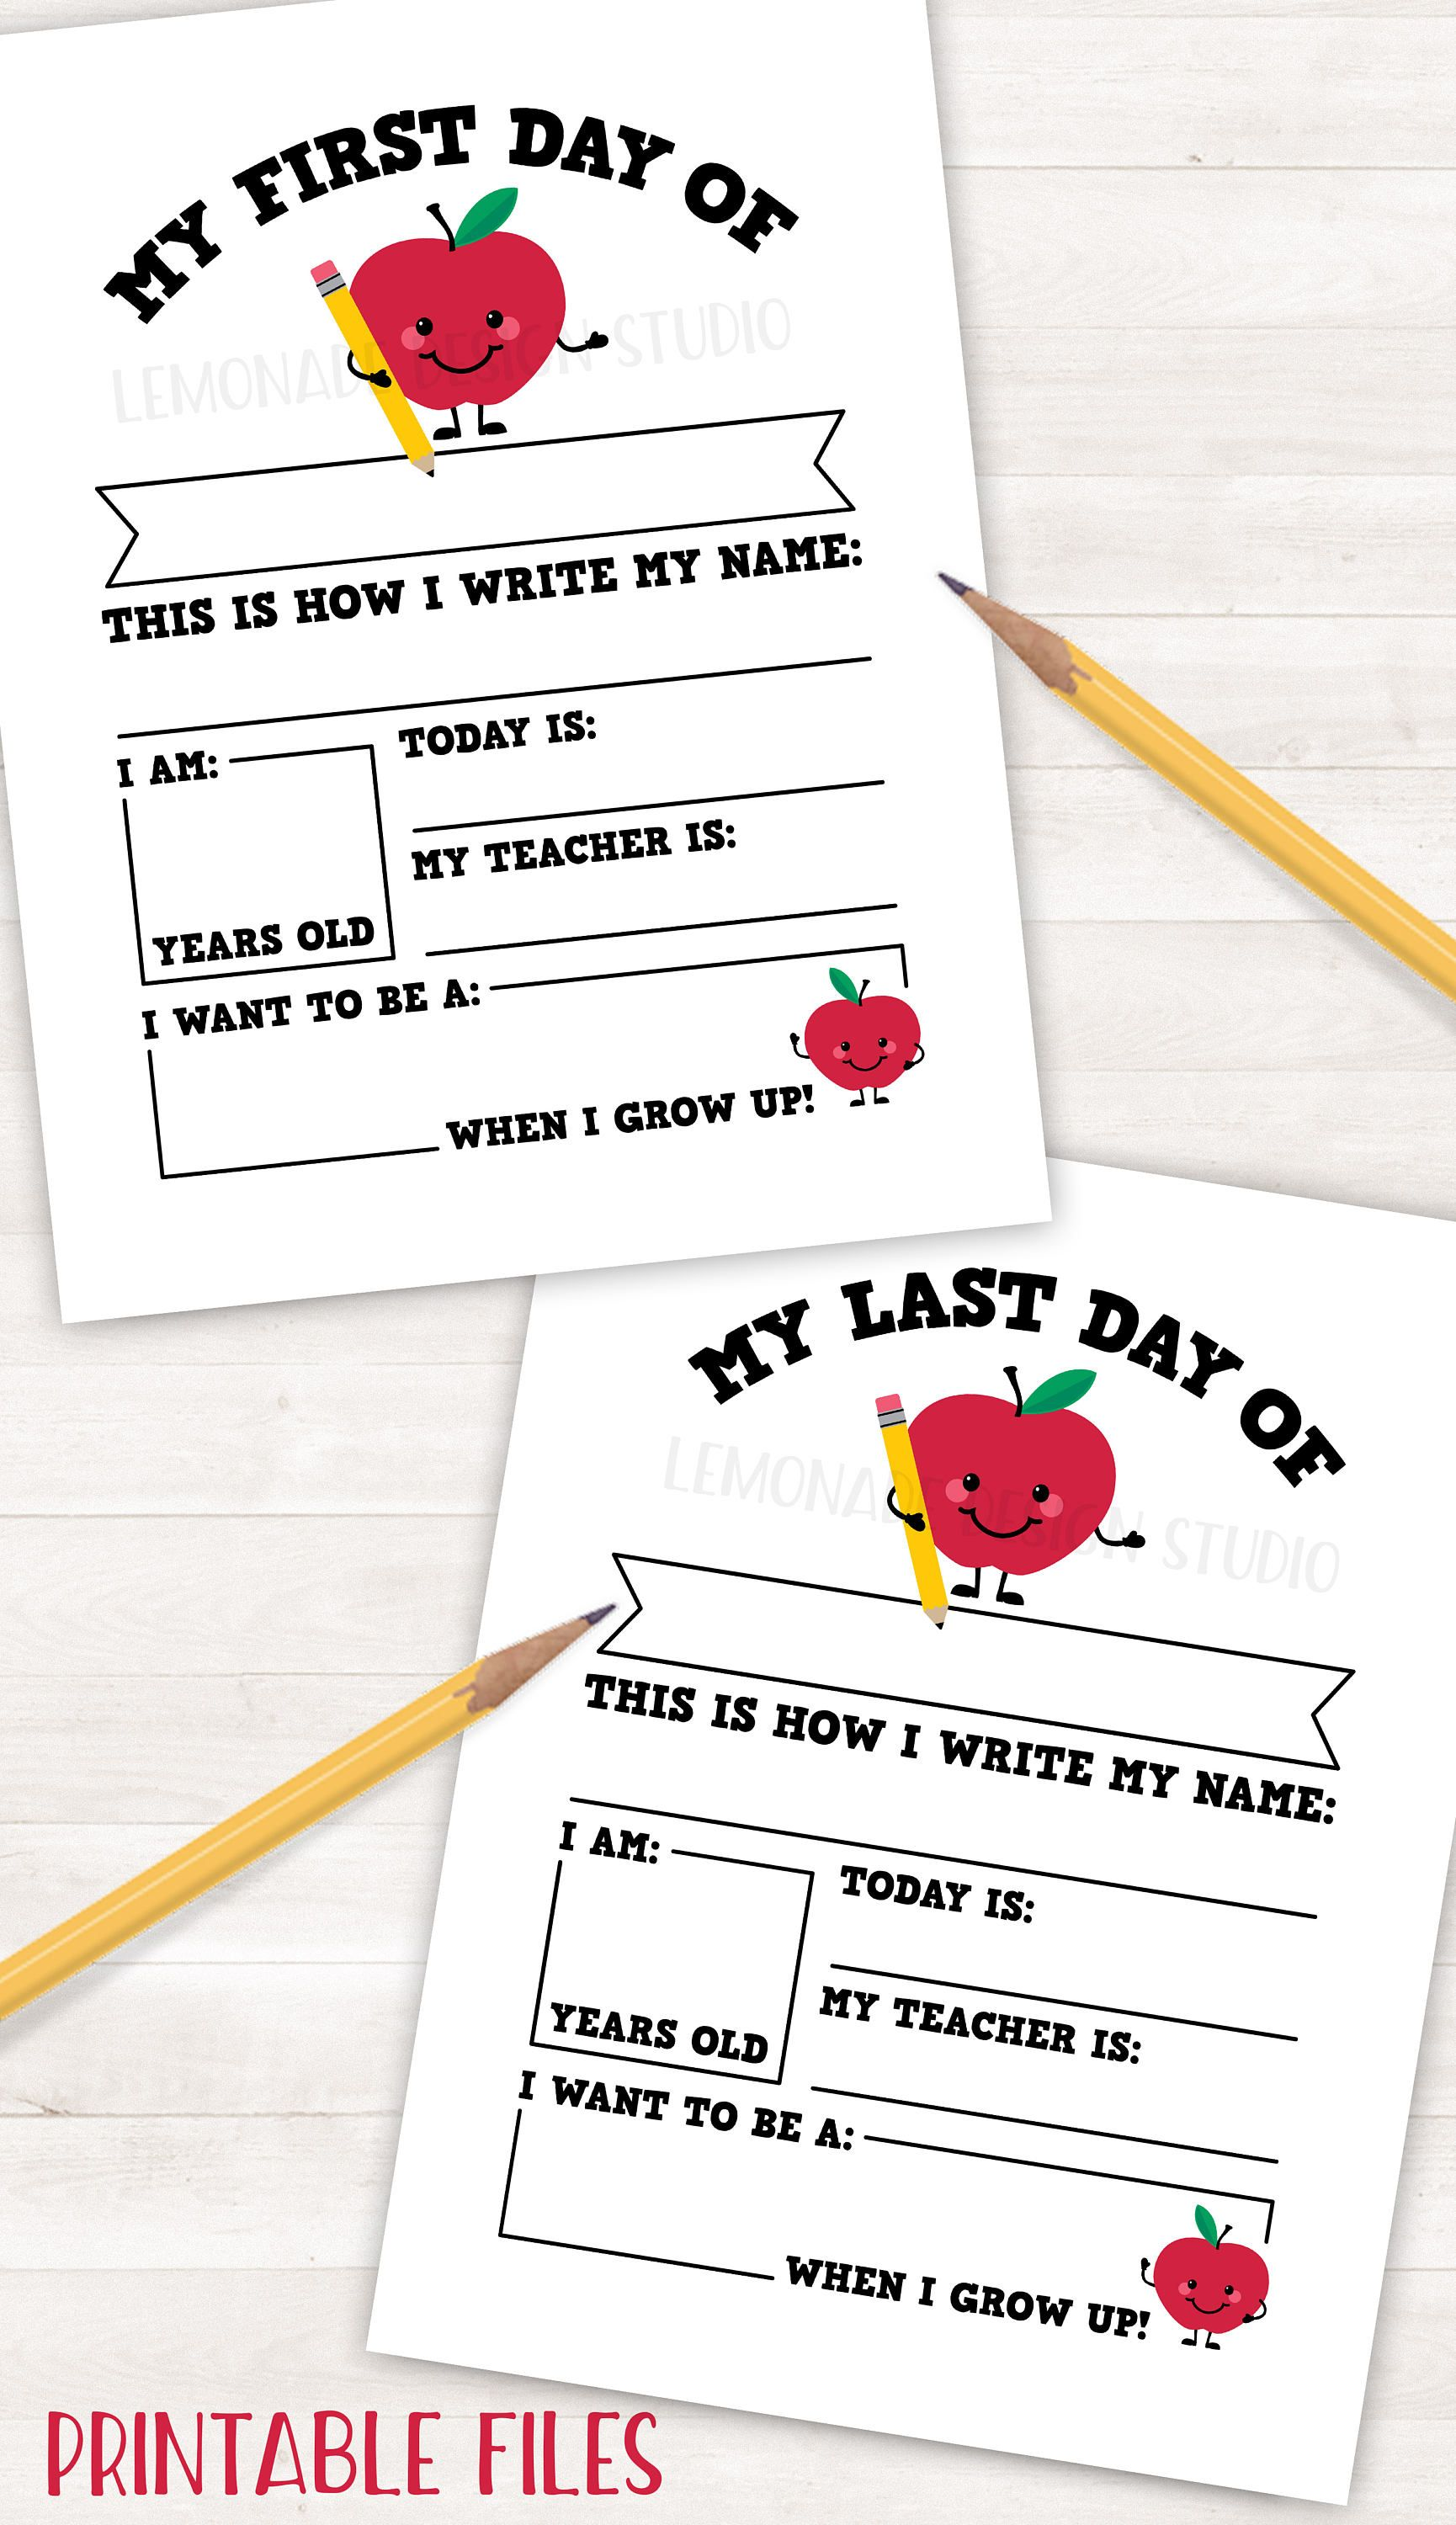 Printable First Day Of School Sign Printable Back To School Sign Last Day Of School Sign